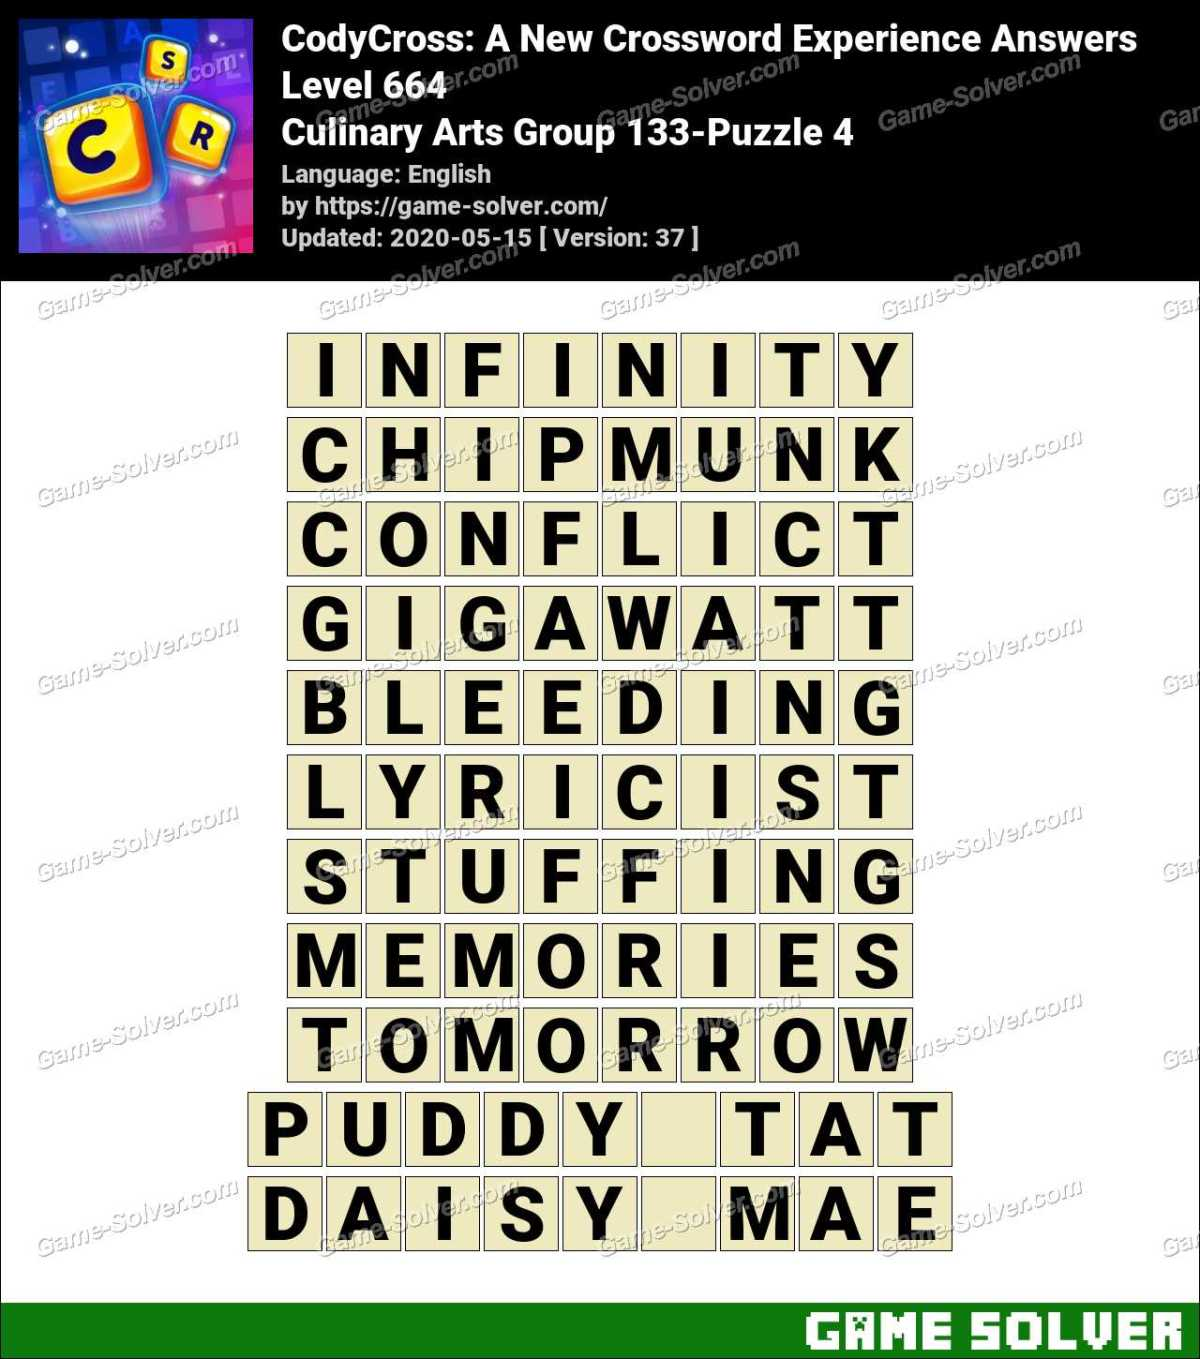 CodyCross Culinary Arts Group 133-Puzzle 4 Answers